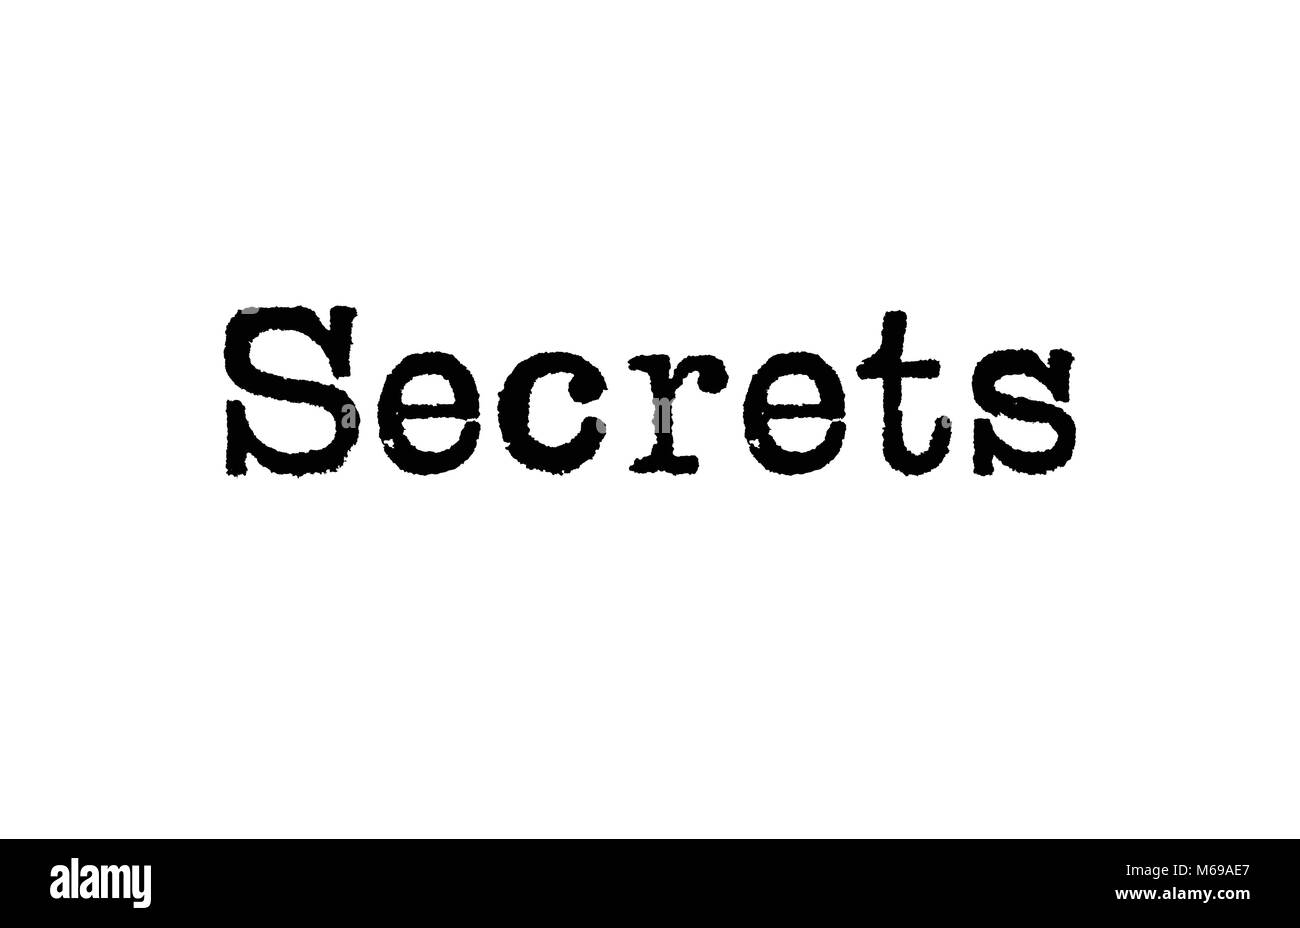 The word Secrets from a typewriter on a white background - Stock Image